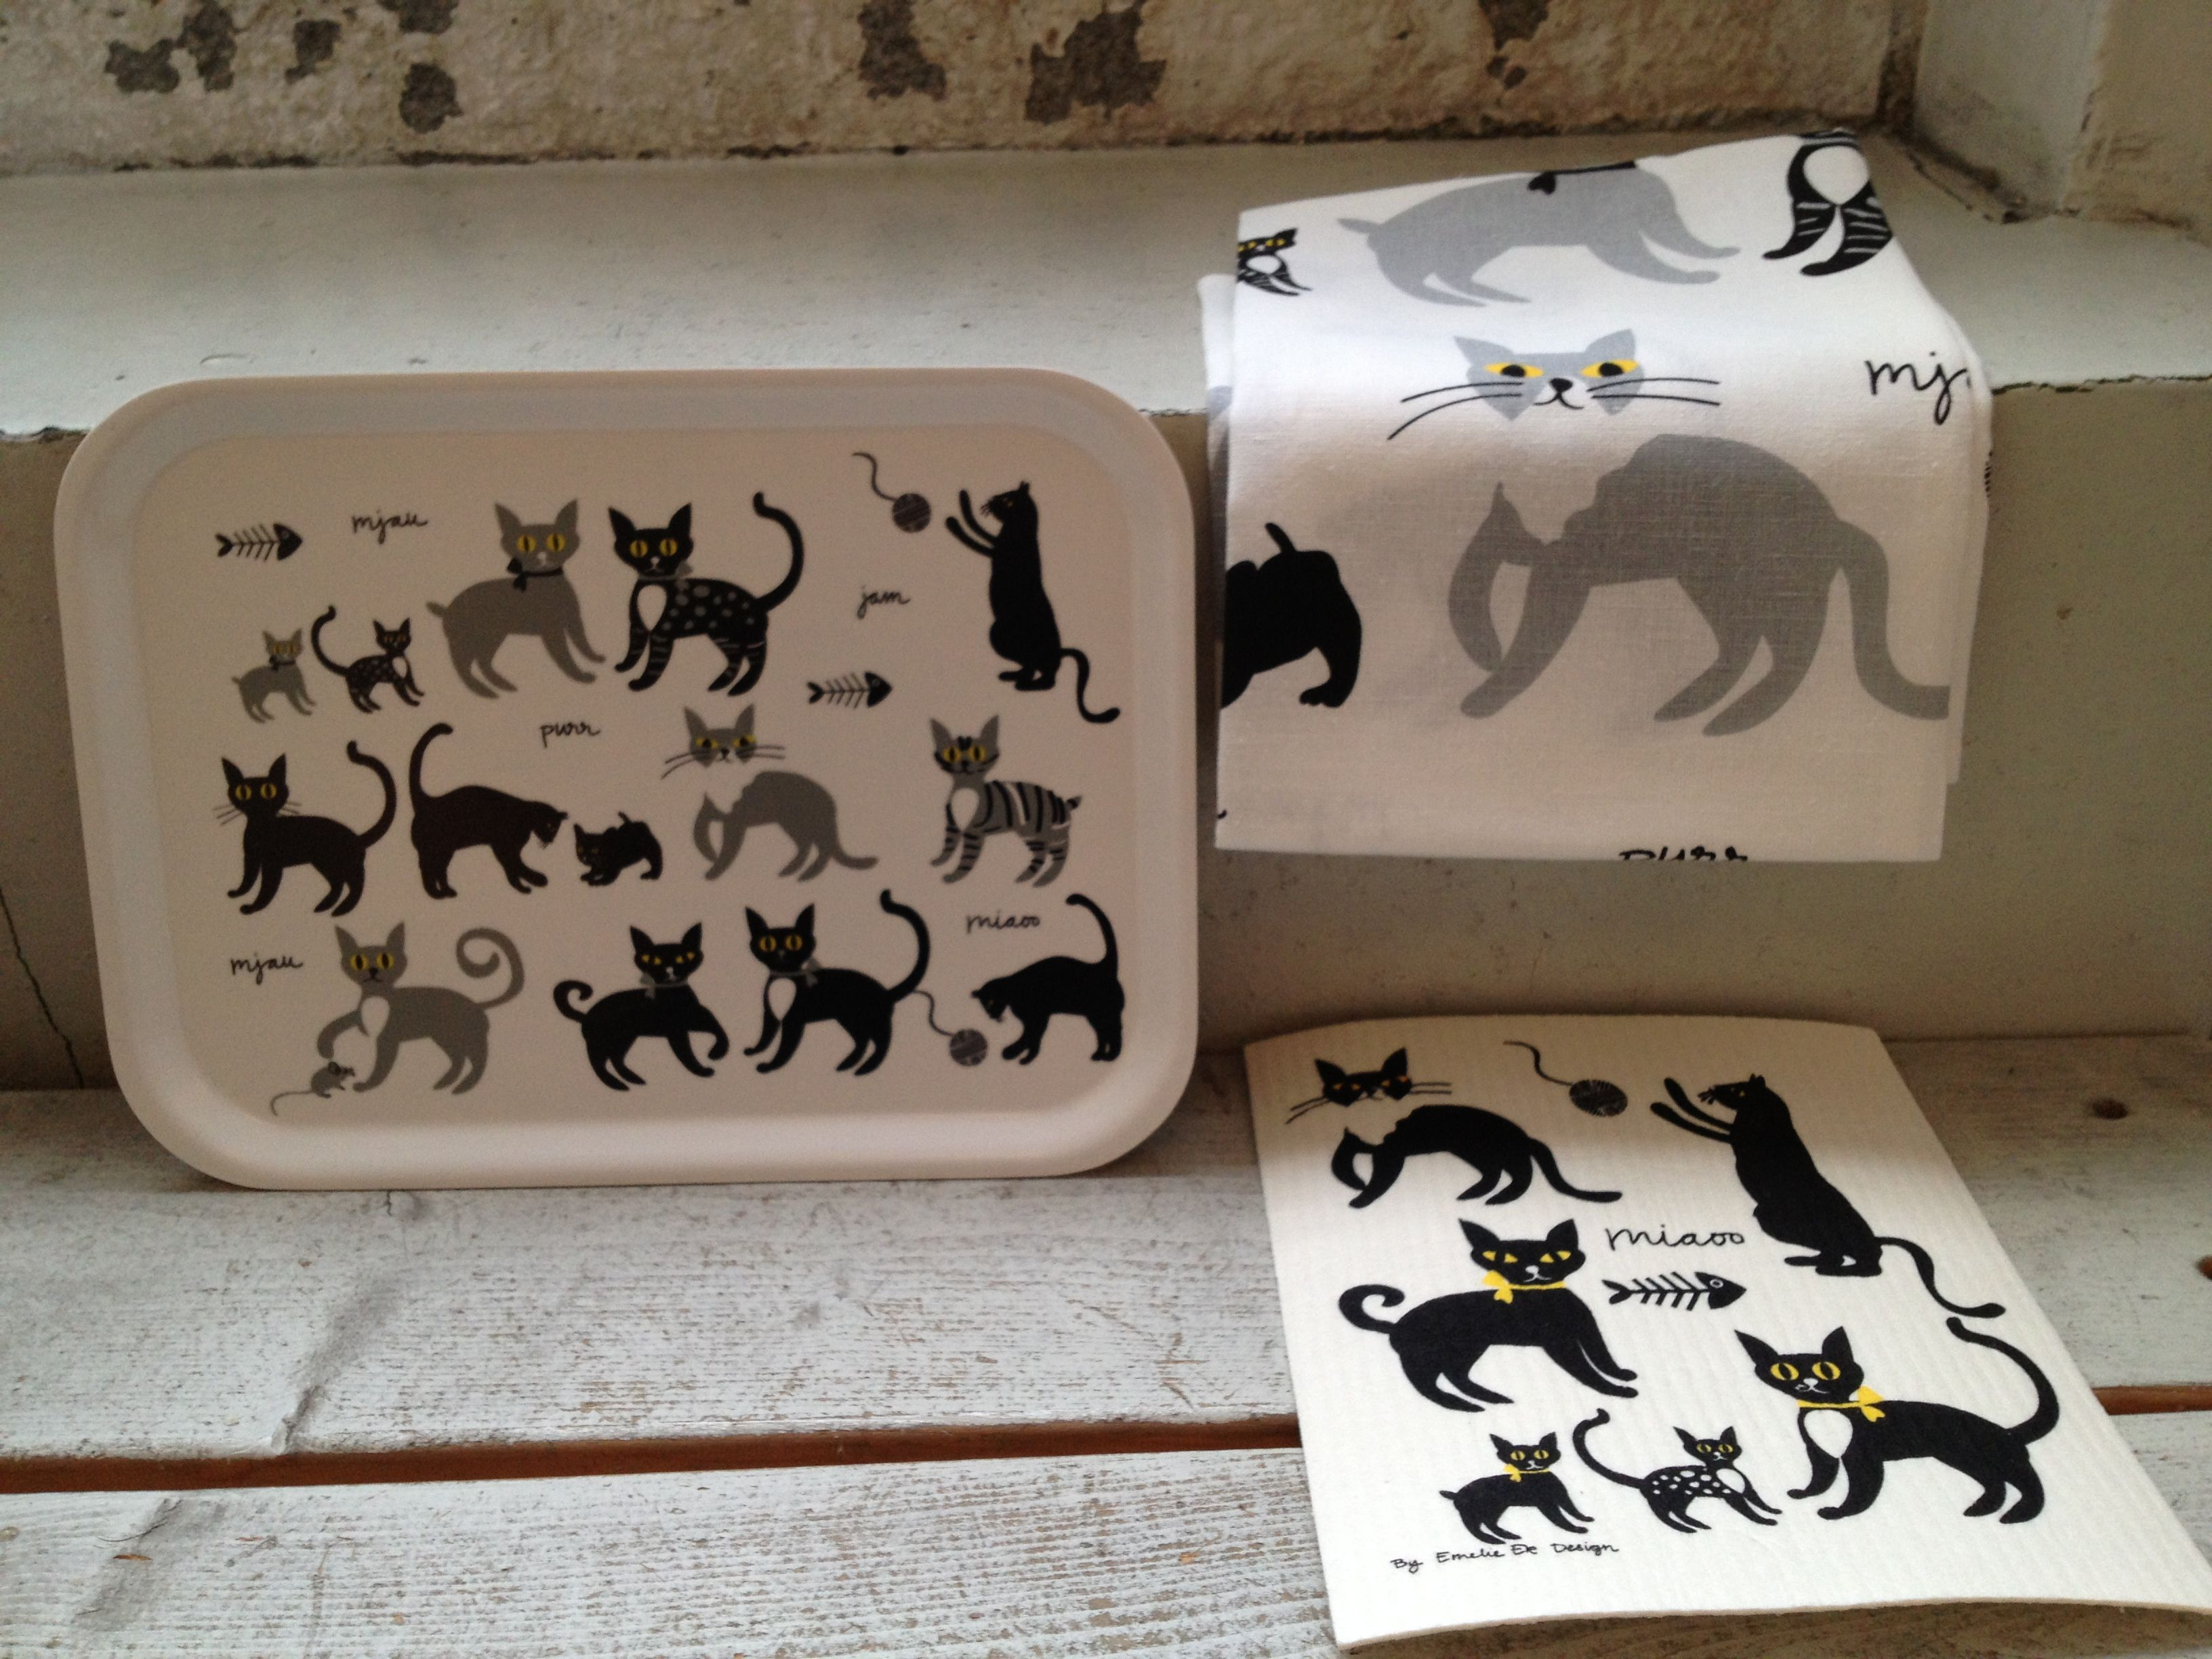 Cat pattern by Emelie ek design tray, towel and dish cloth